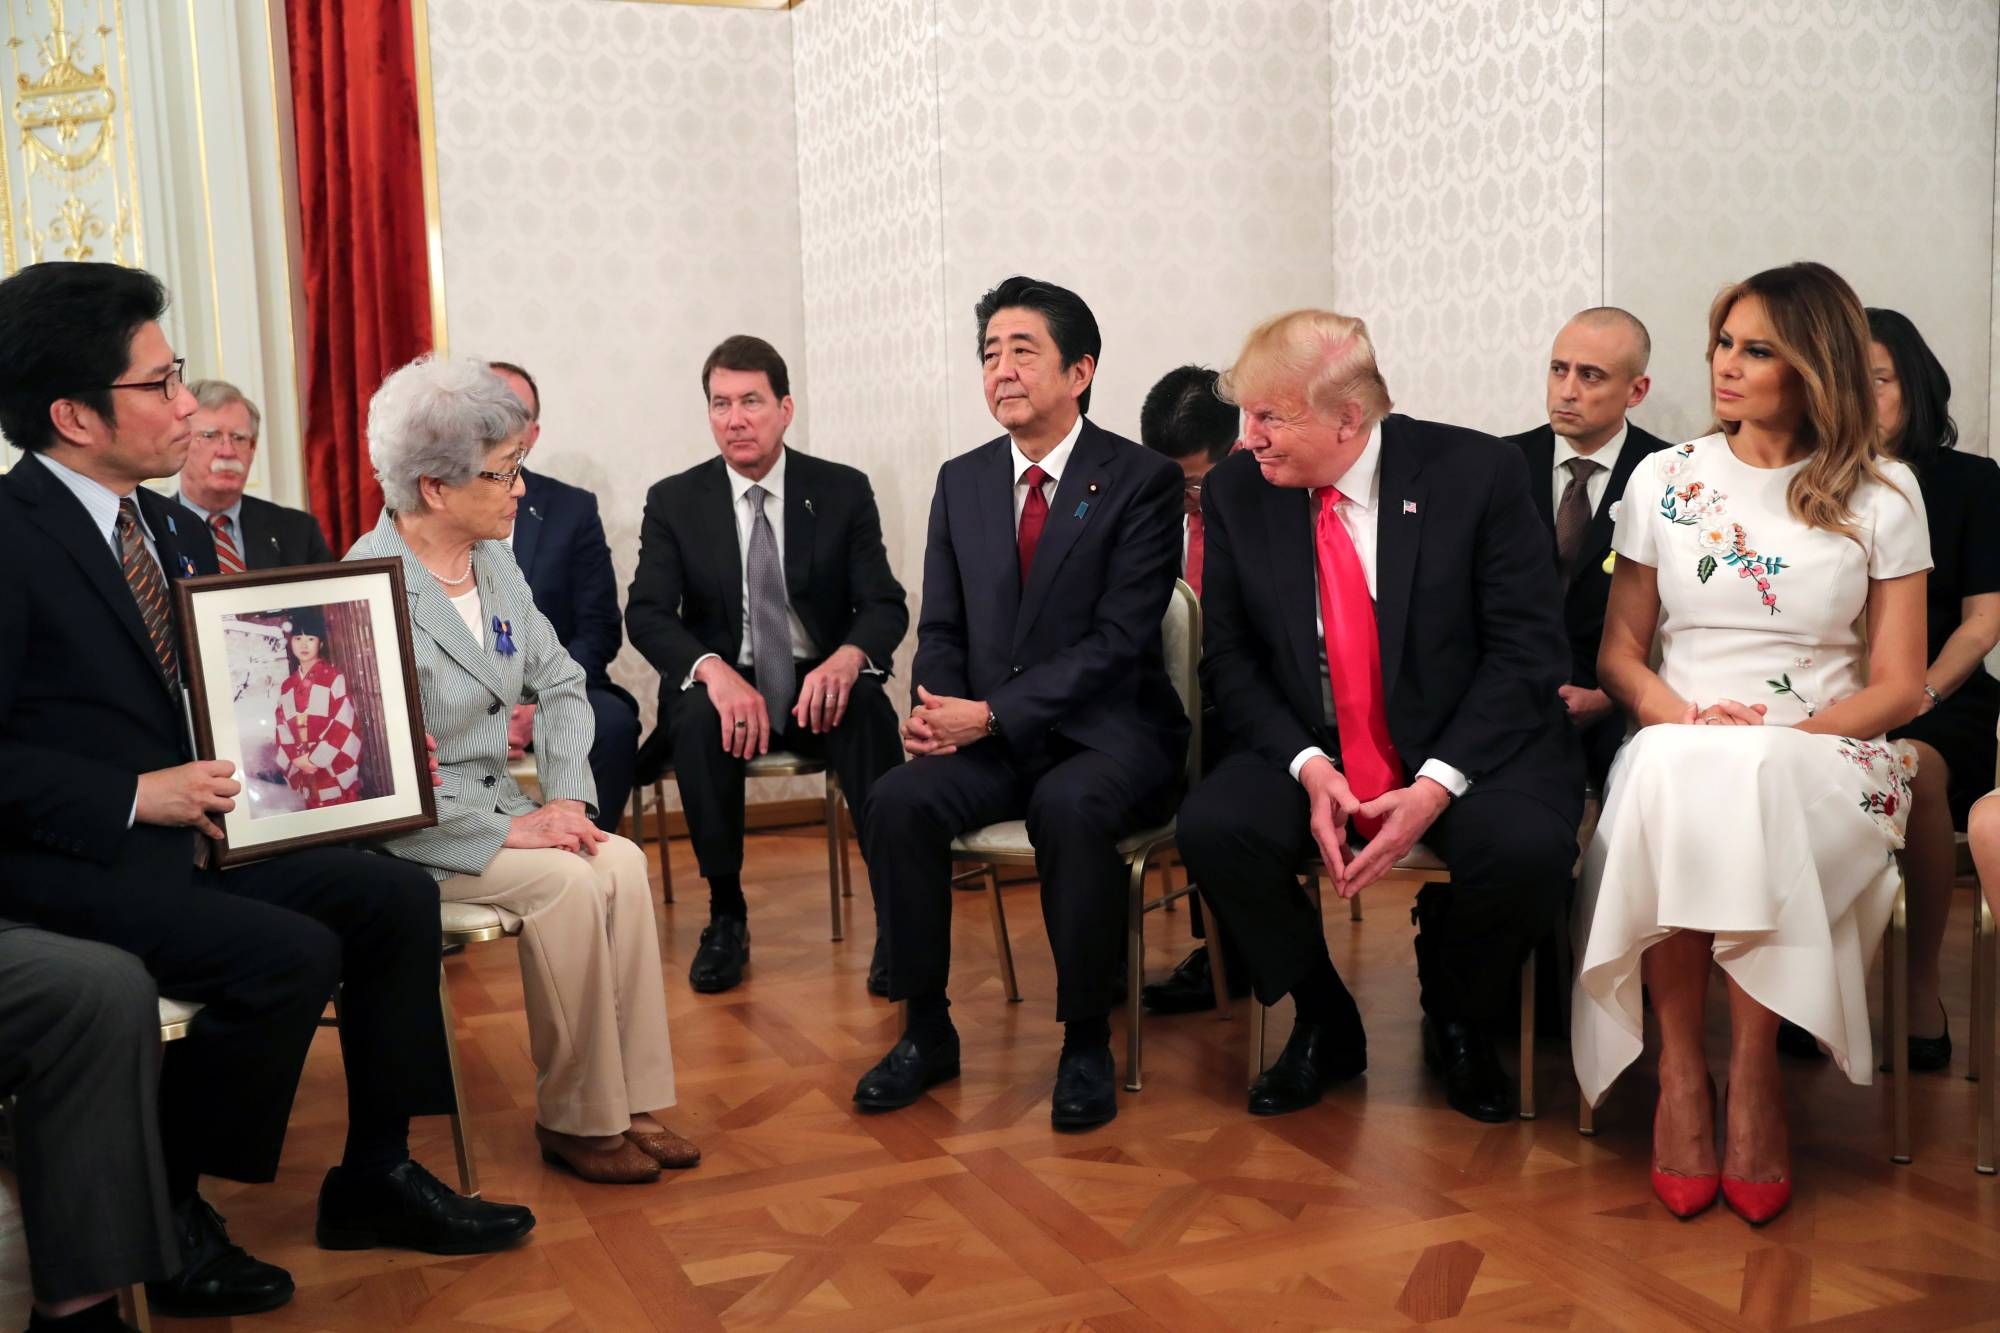 Prime Minister Shinzo Abe, U.S. President Donald Trump and first lady Melania Trump meet with family members of people abducted by North Korea in Tokyo in May 2019.    REUTERS